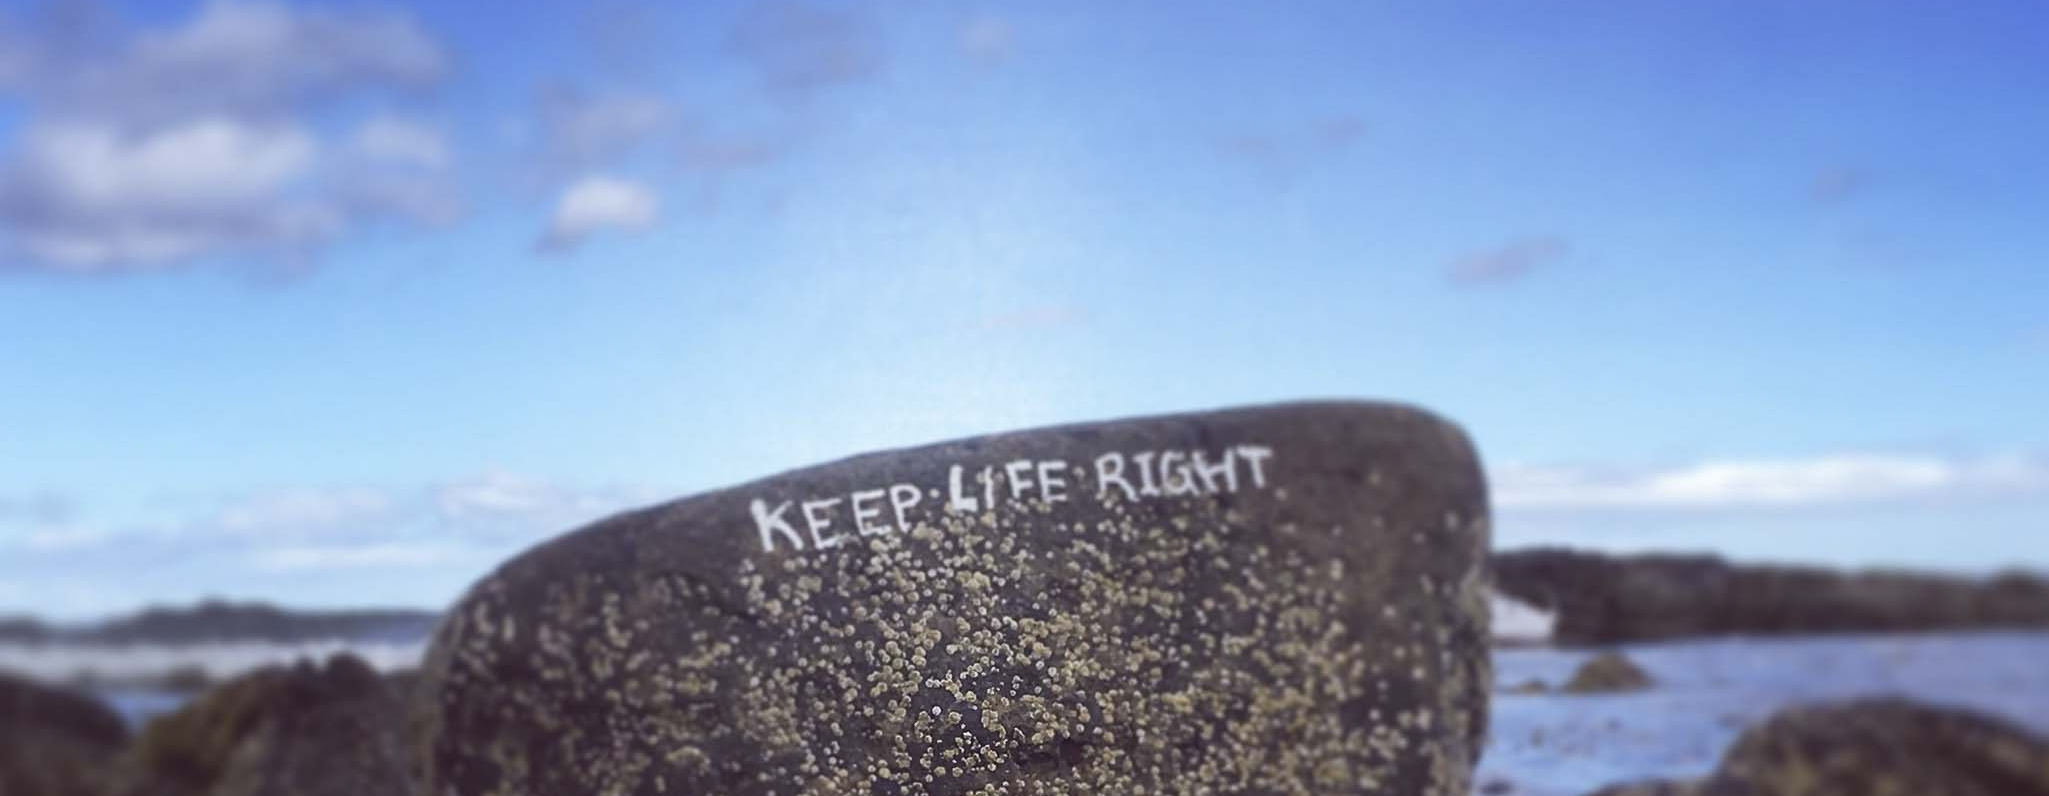 keep life right ali cleary